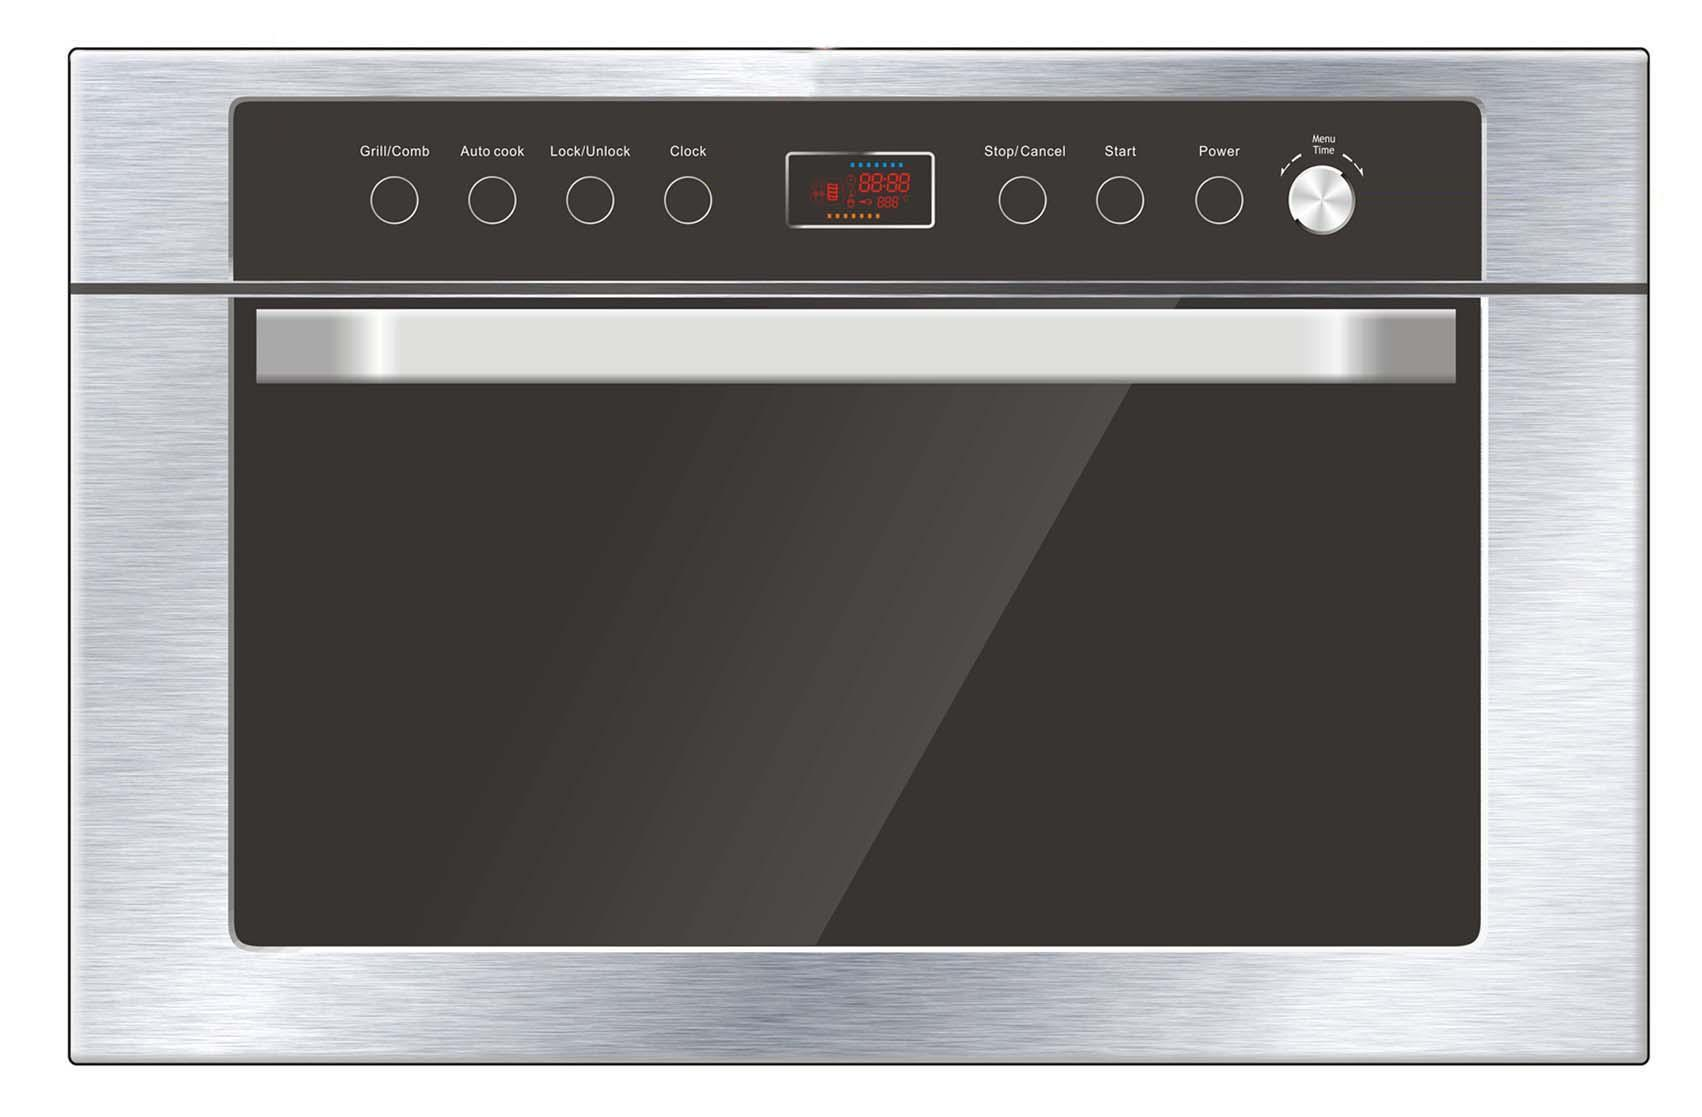 Countertop Microwave Oven With Convection And Grill : Convection Microwave Oven/Grill Microwave Oven/Digital Microwave Oven ...